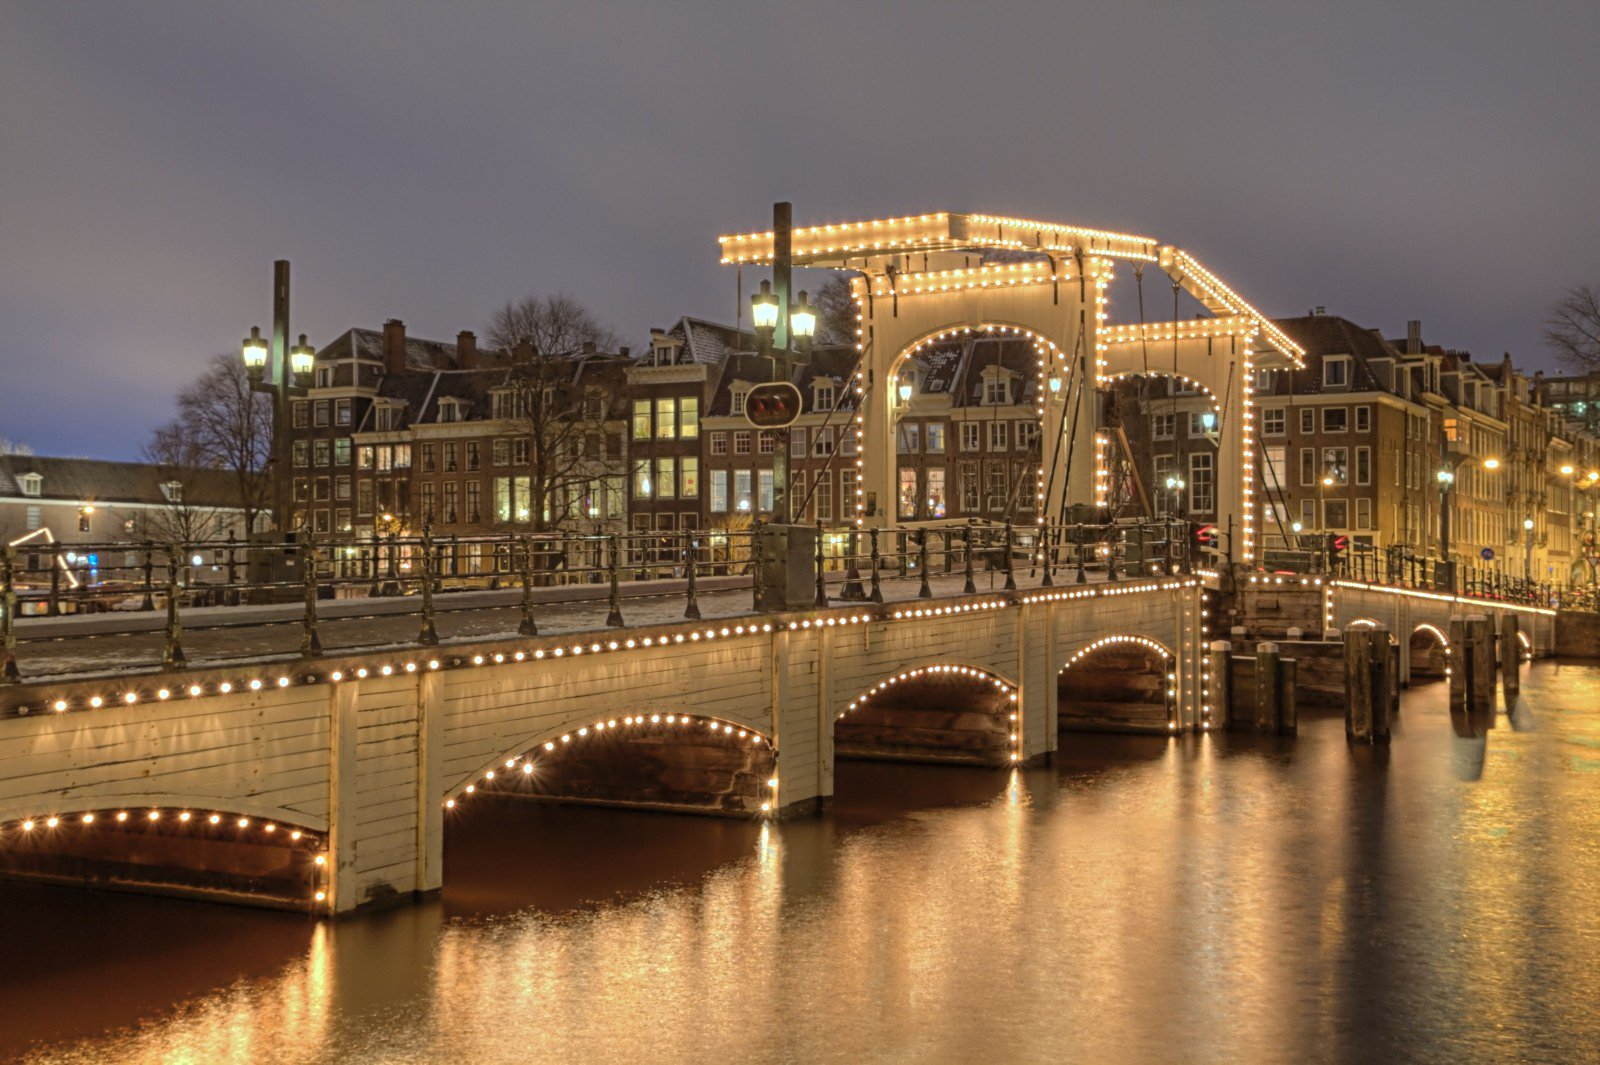 Amsterdam_Magere_Brug